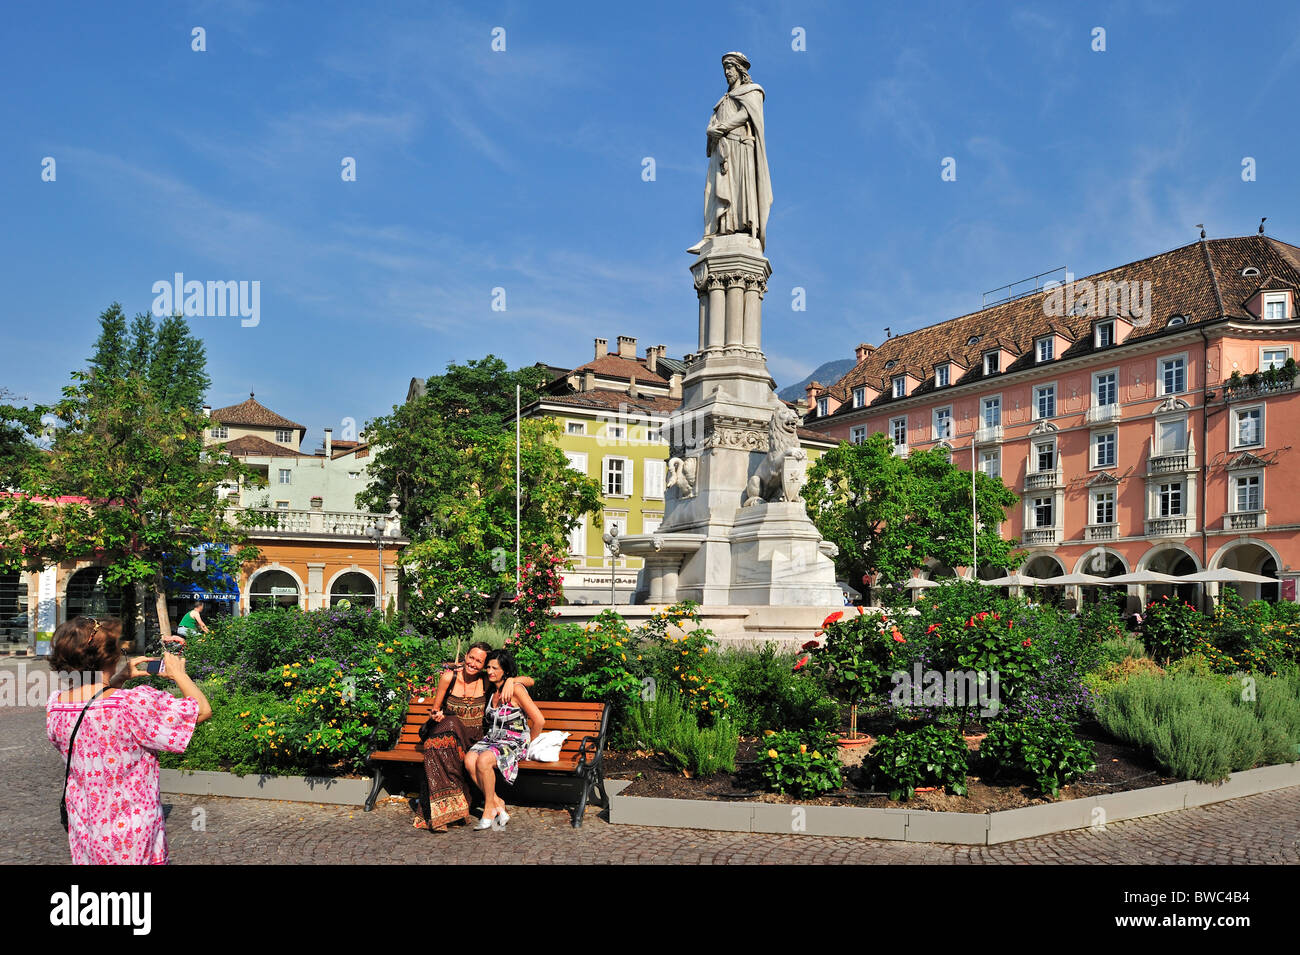 Tourists posing in front of statue of Walther von der Vogelweide at the Piazza Walther in Bolzano / Bozen, Dolomites, - Stock Image